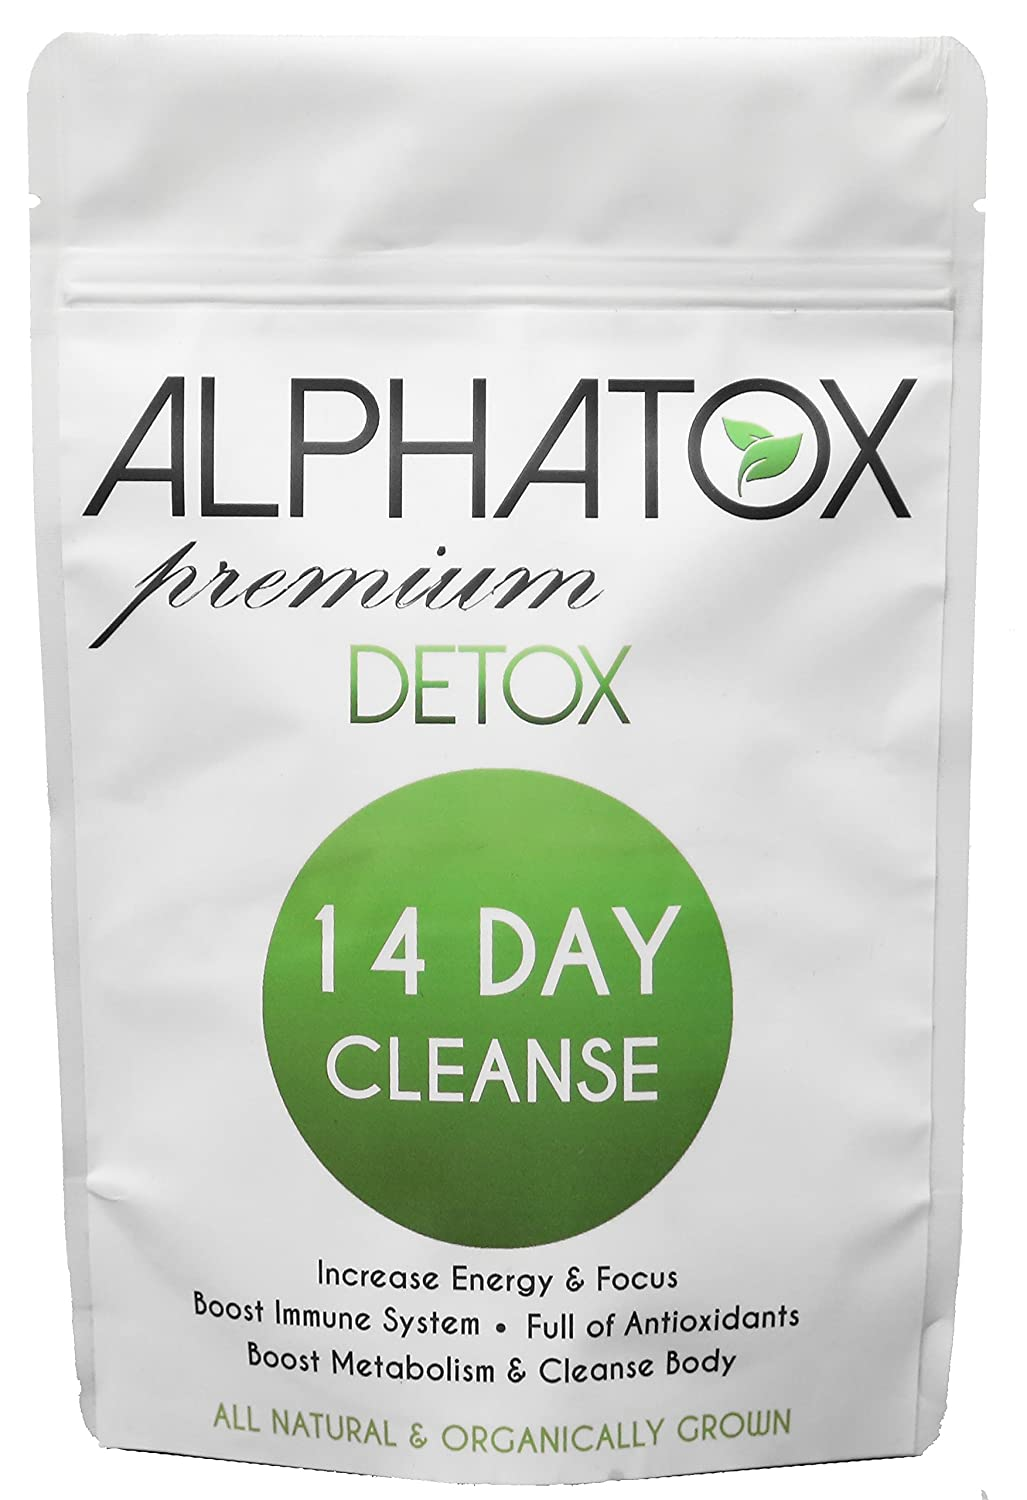 Alphatox 14 Day Premium Detox Tea Cycle | Helps Lose Weight Naturally, Full of Anti-oxidants | 14 Herbal Tea Bags | Organic Tea